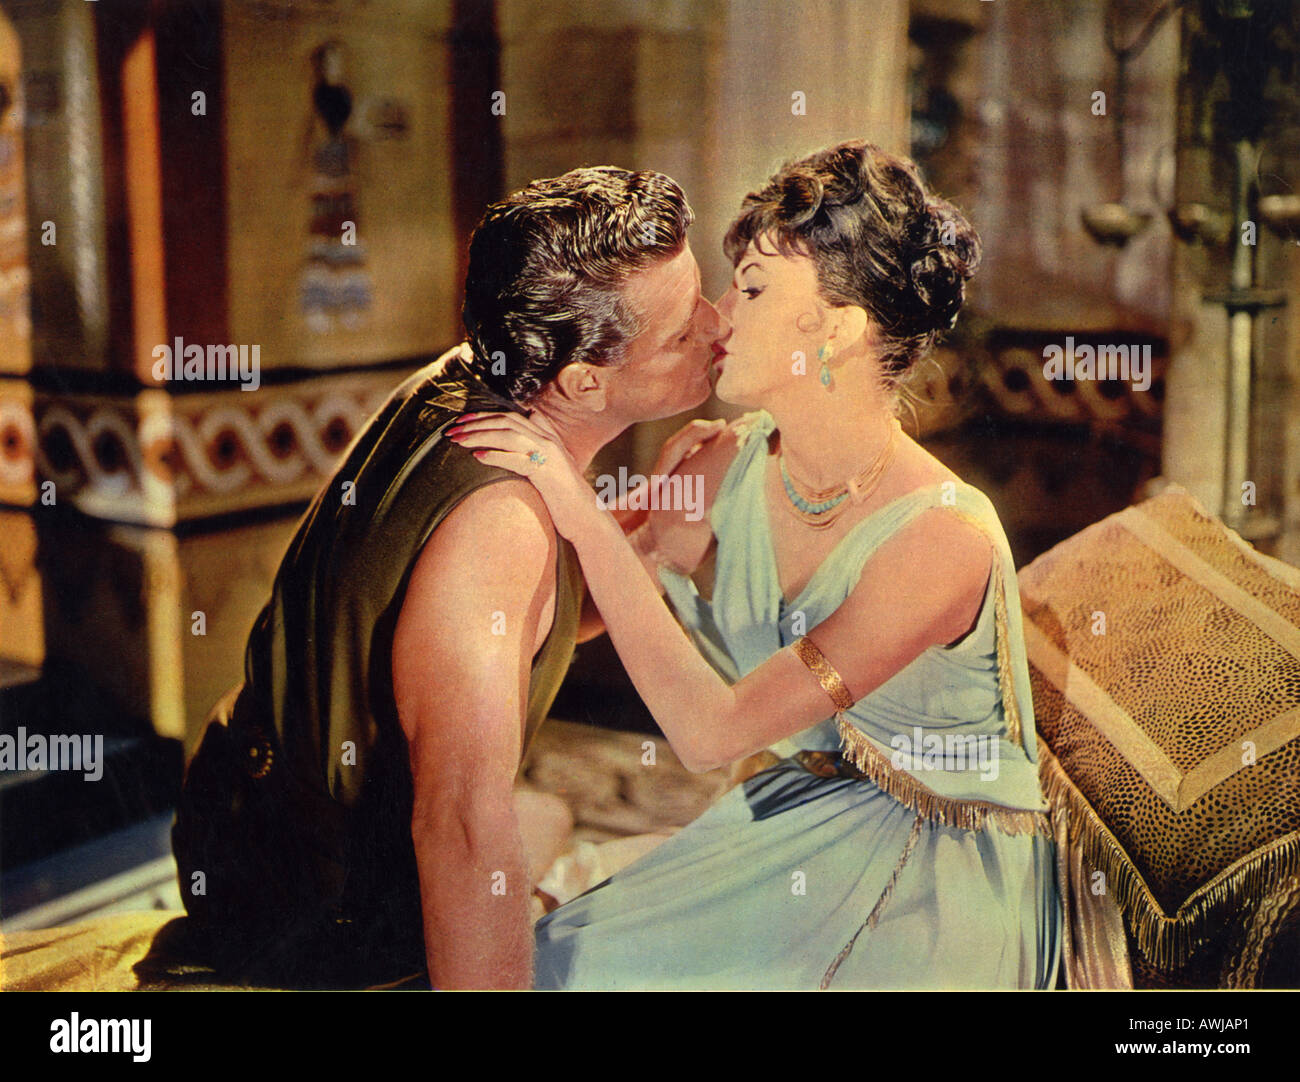 ESTHER AND THE KING 1960 TCF film with Joan Collins and Richard Egan - Stock Image